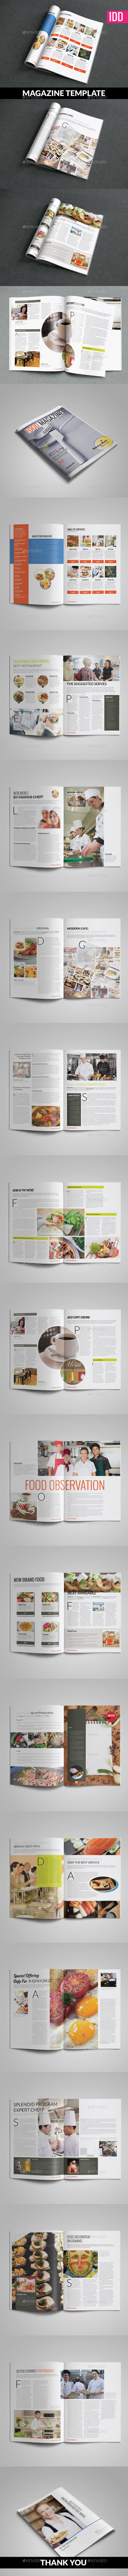 32 Pages | Magazine Template - Magazines Print Templates